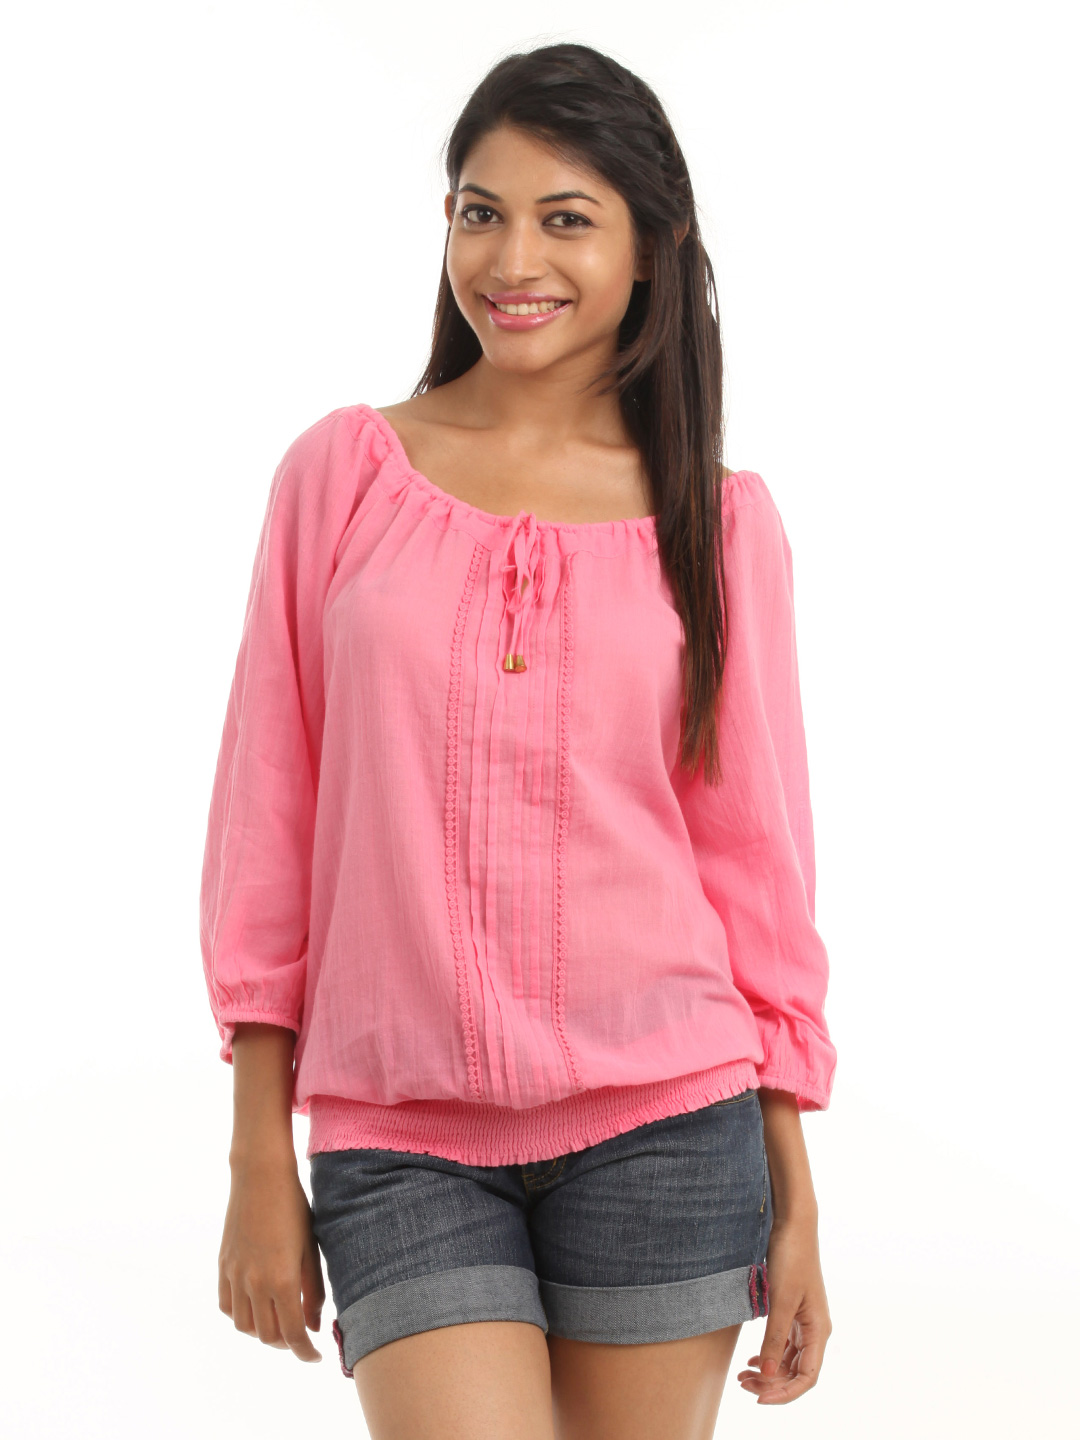 Vero Moda Women Pink Top